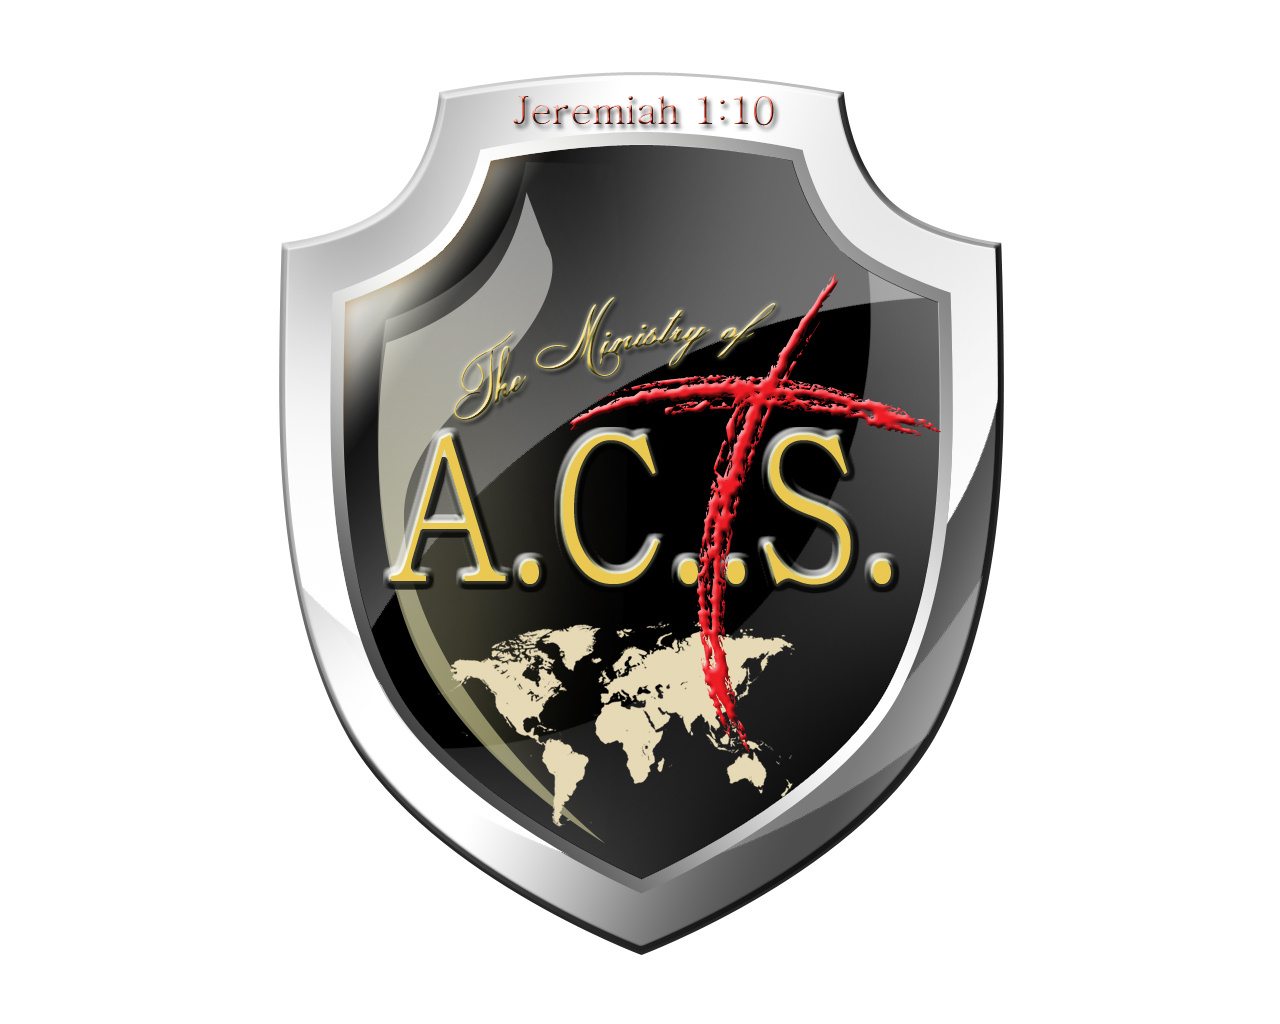 The Ministry of A.C.T.S.